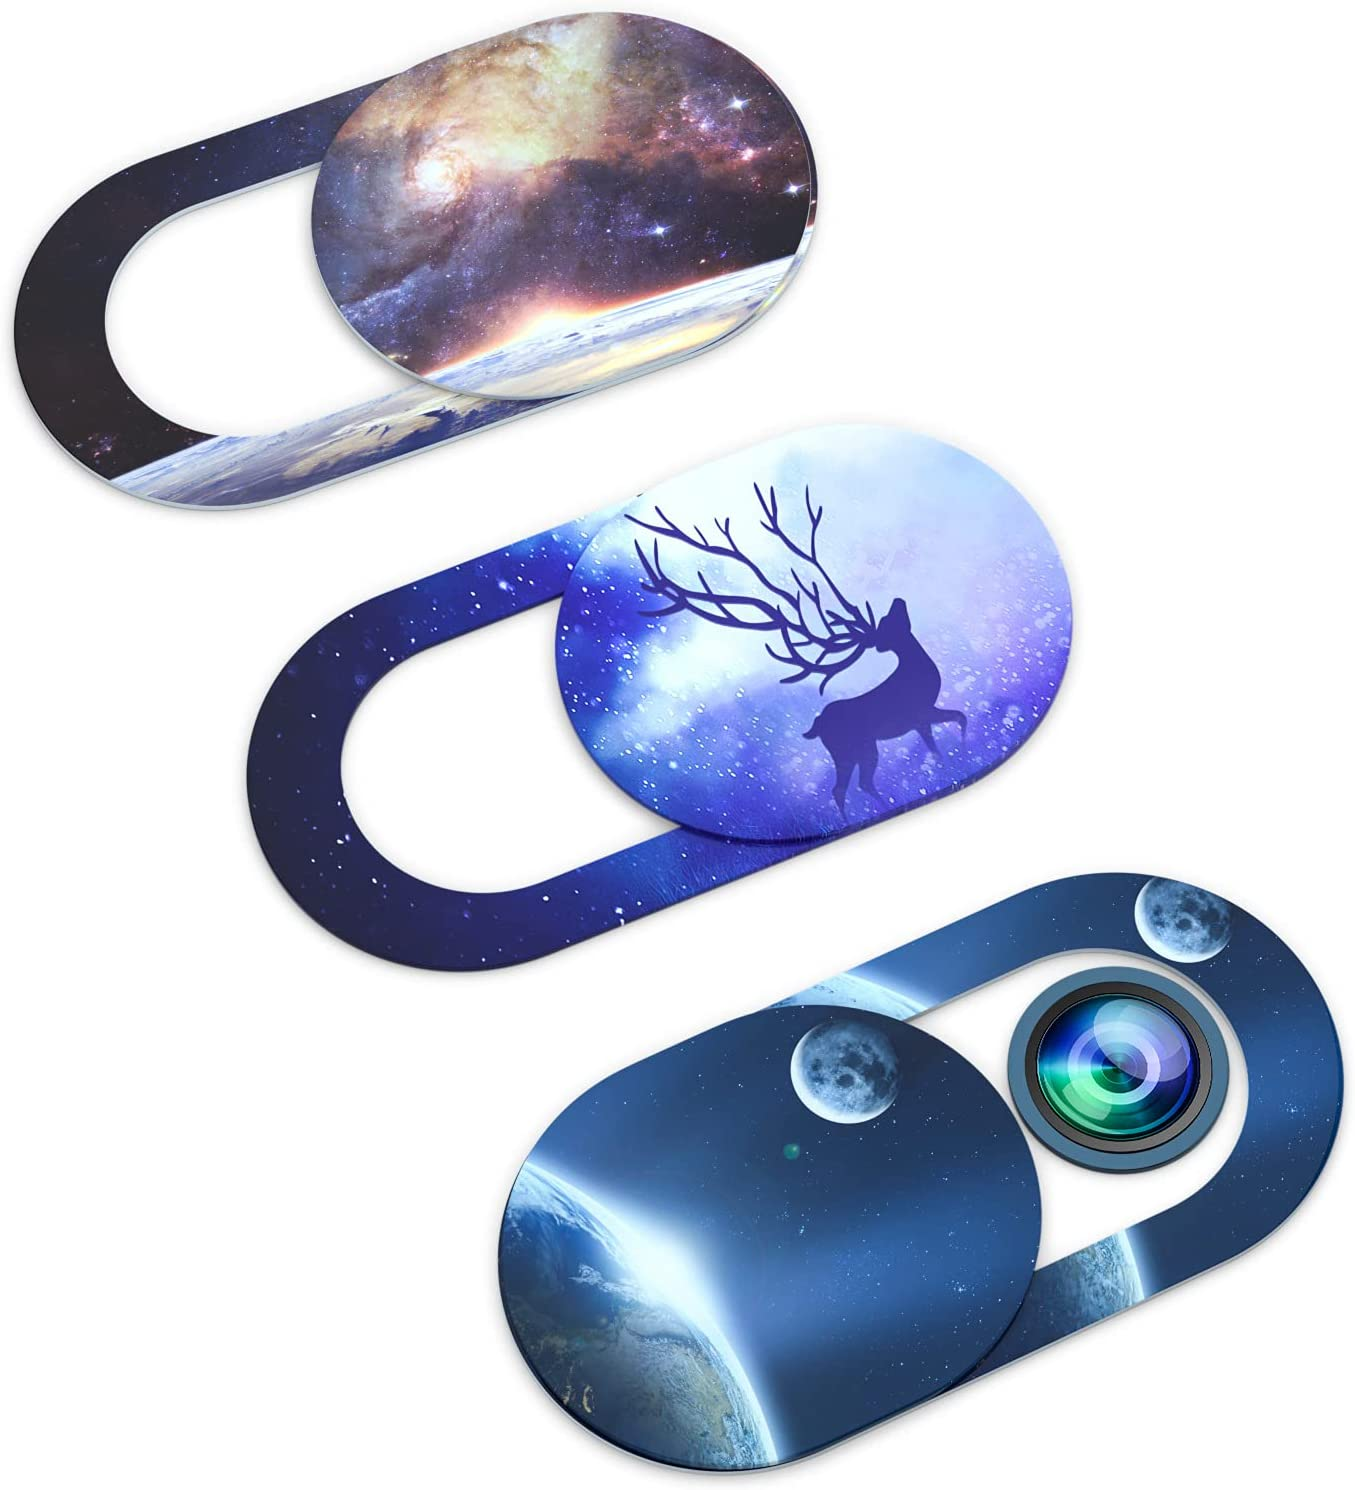 Webcam Covers, Web Mac Laptop Camera Cover Slide,Ultra Thin Webcam Blocker Fits MacBook Air Pro iPhone iPad,Mac Camera Blocker for Laptop Protect Your Privacy and Security (Starry Sky 3PCS)